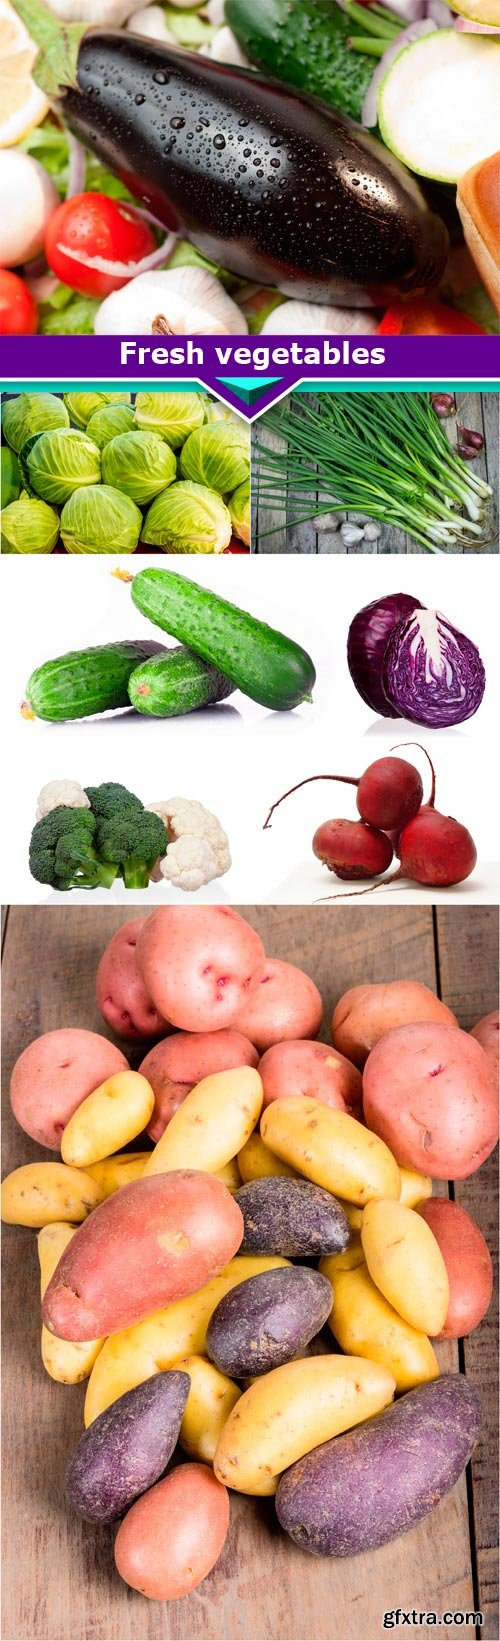 Fresh vegetables 8x JPEG